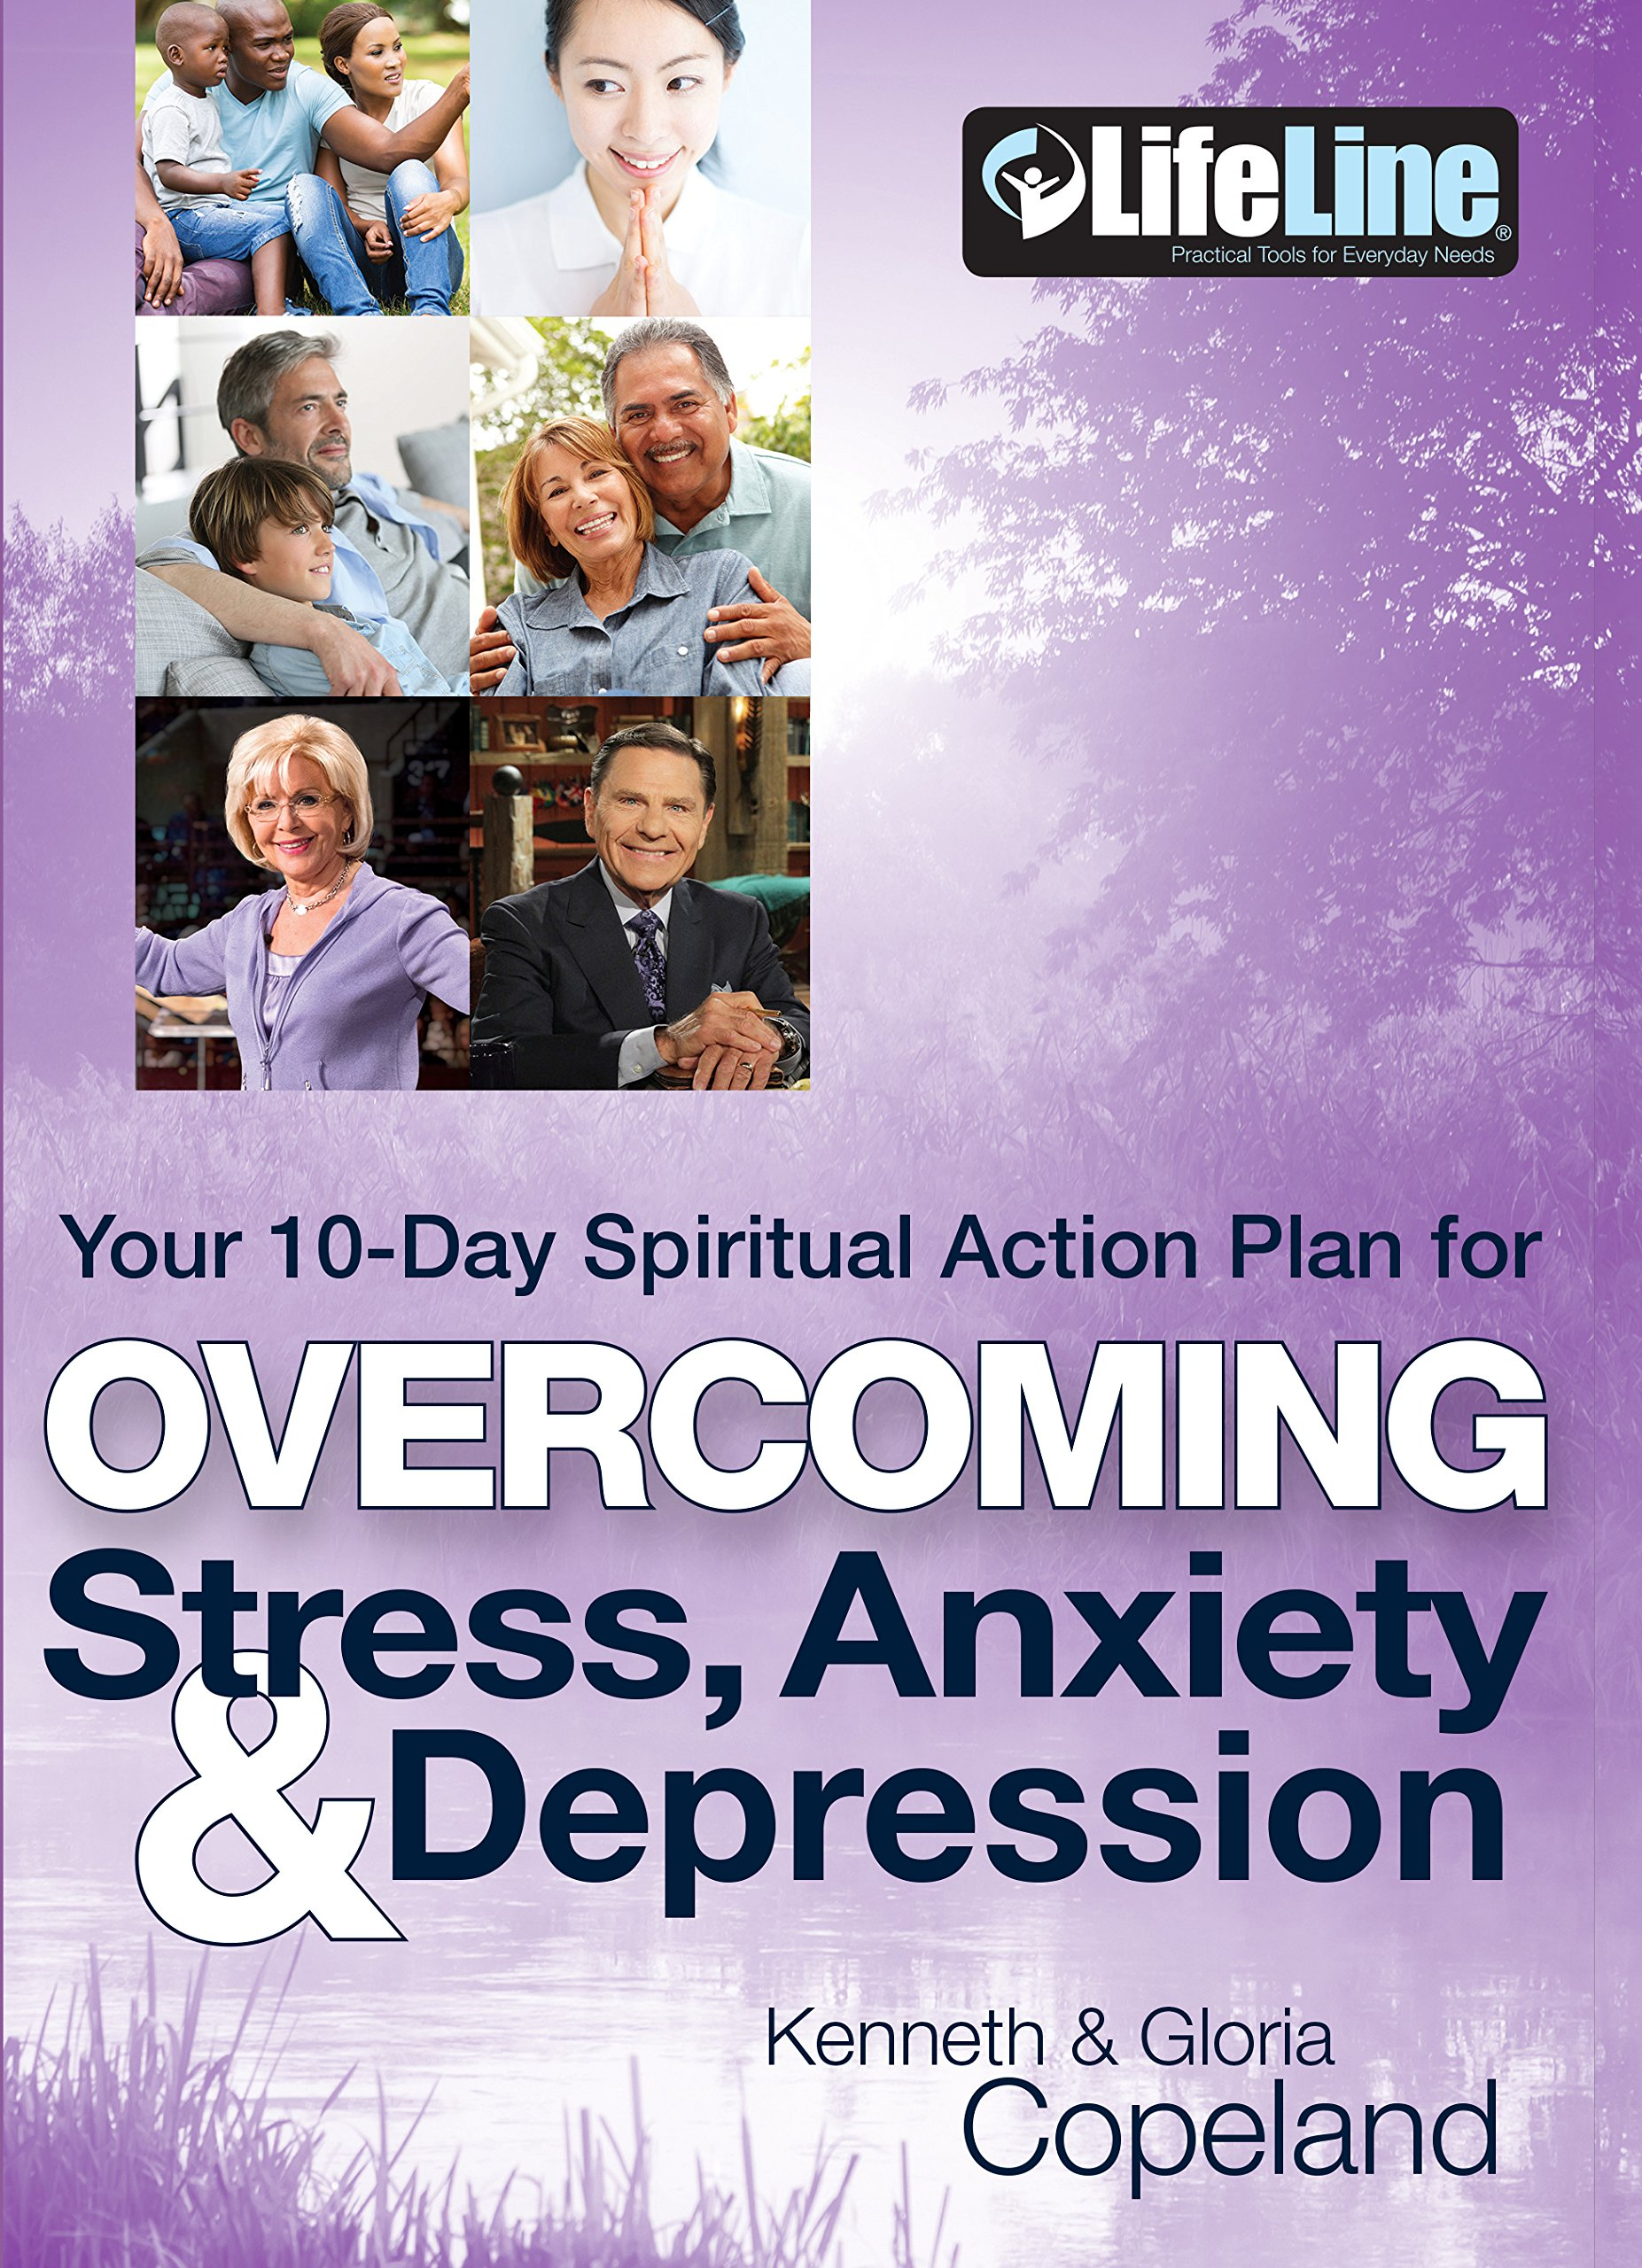 Overcoming Stress, Anxiety & Depression: Your 10-Day Spiritual Action Plan (Lifeline) ebook